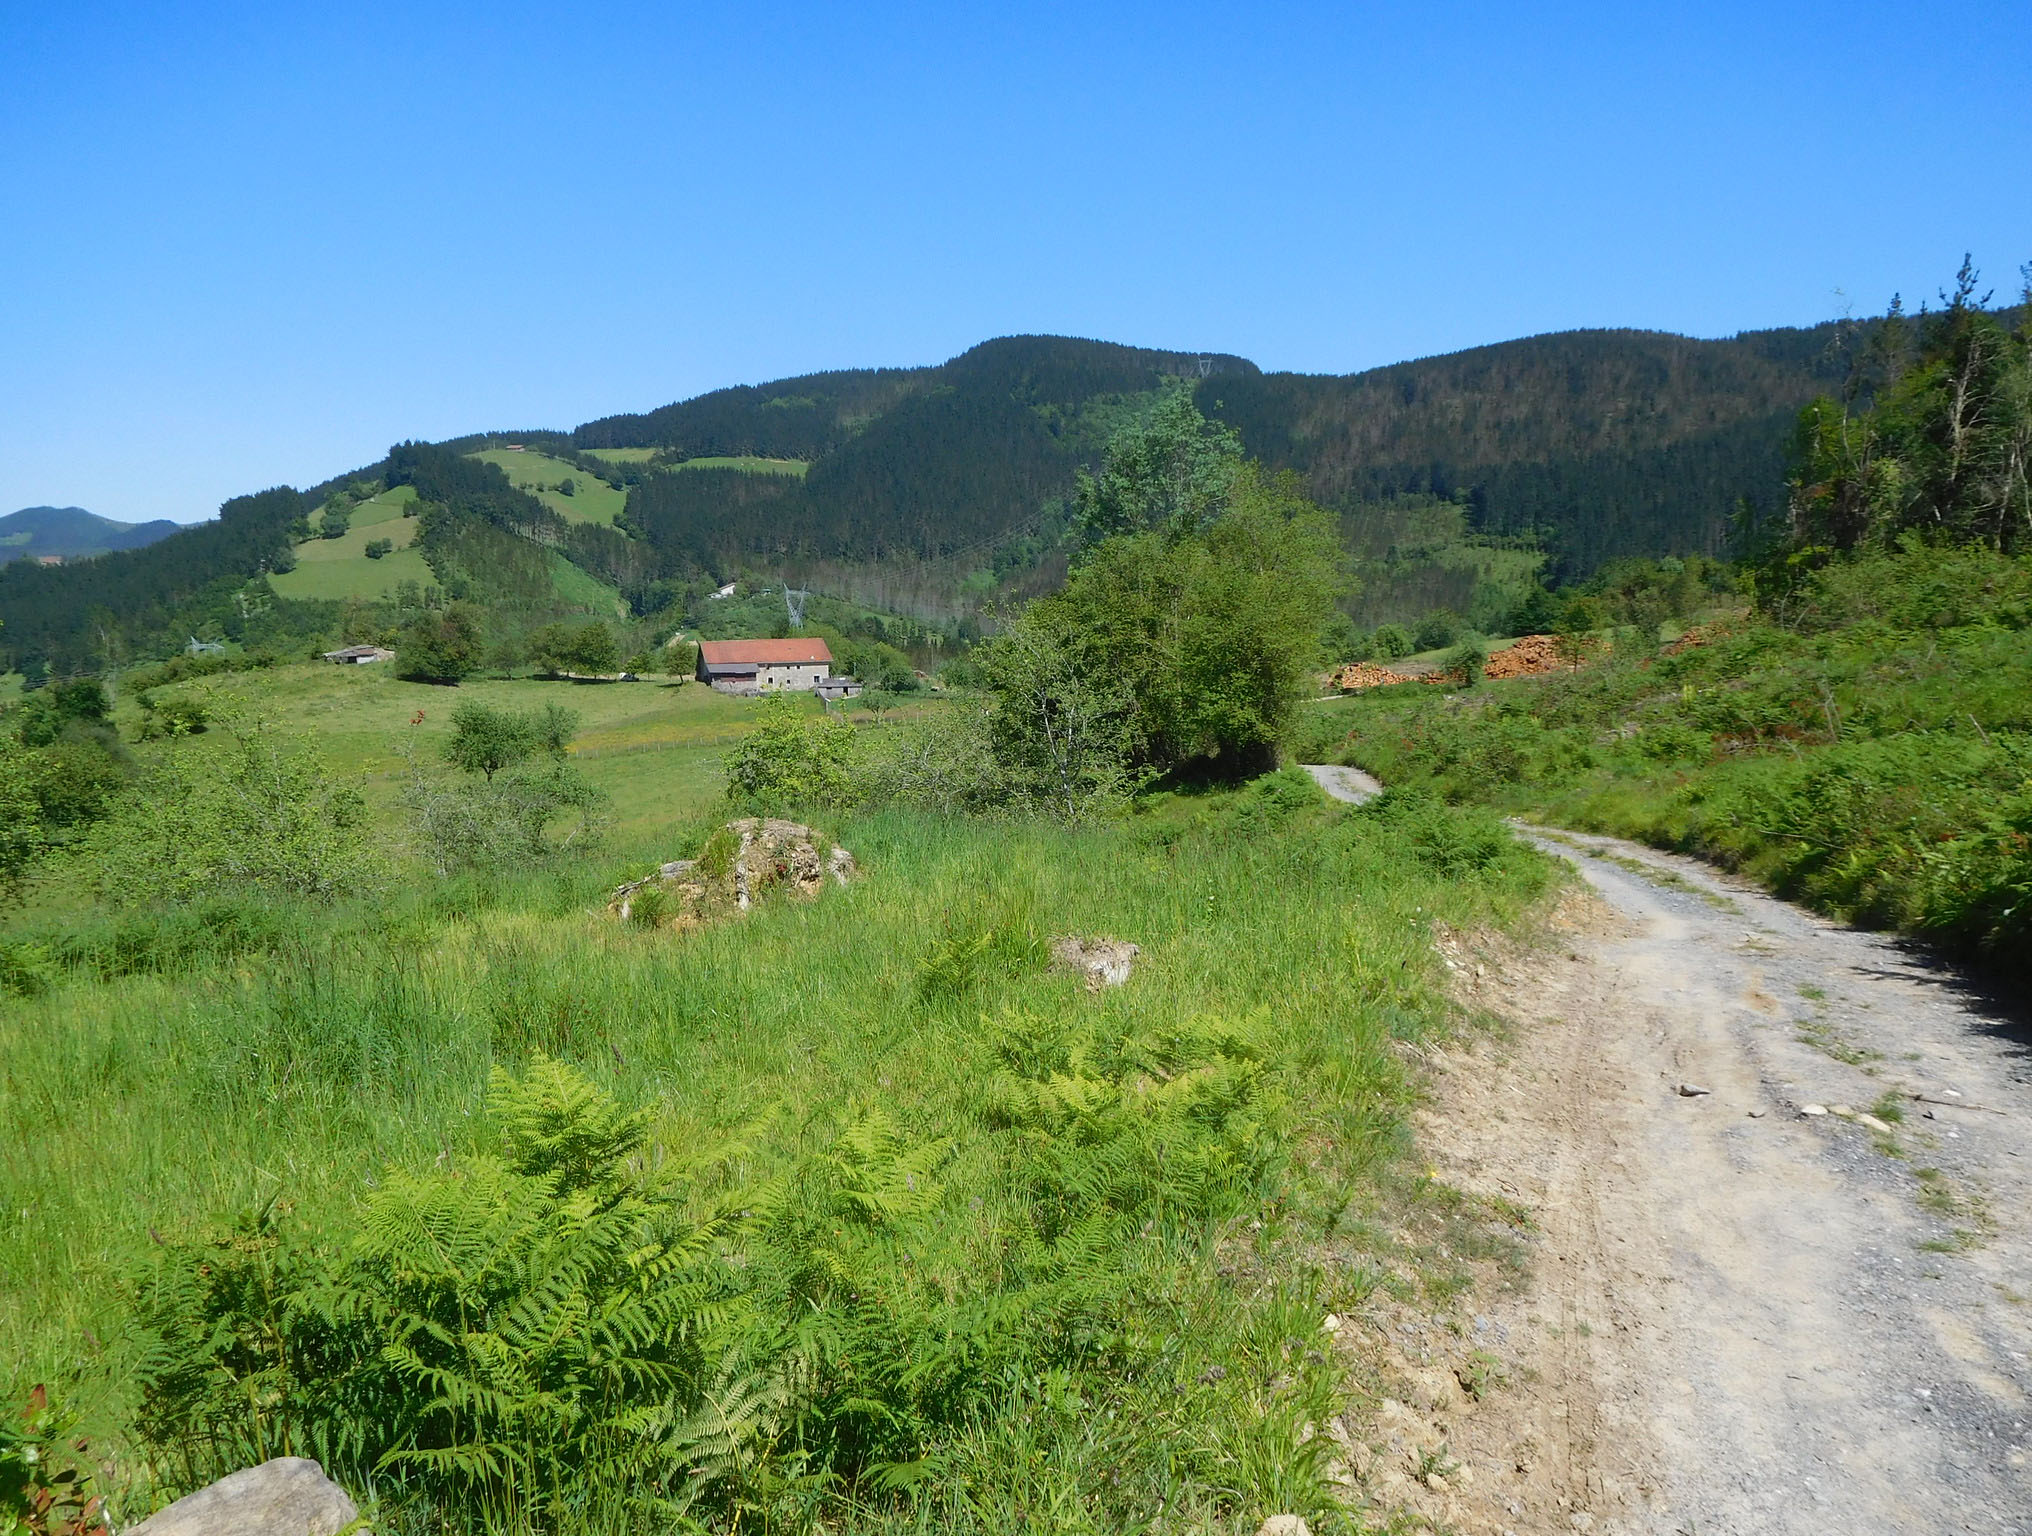 Basque Country Tour - May 23, 2019